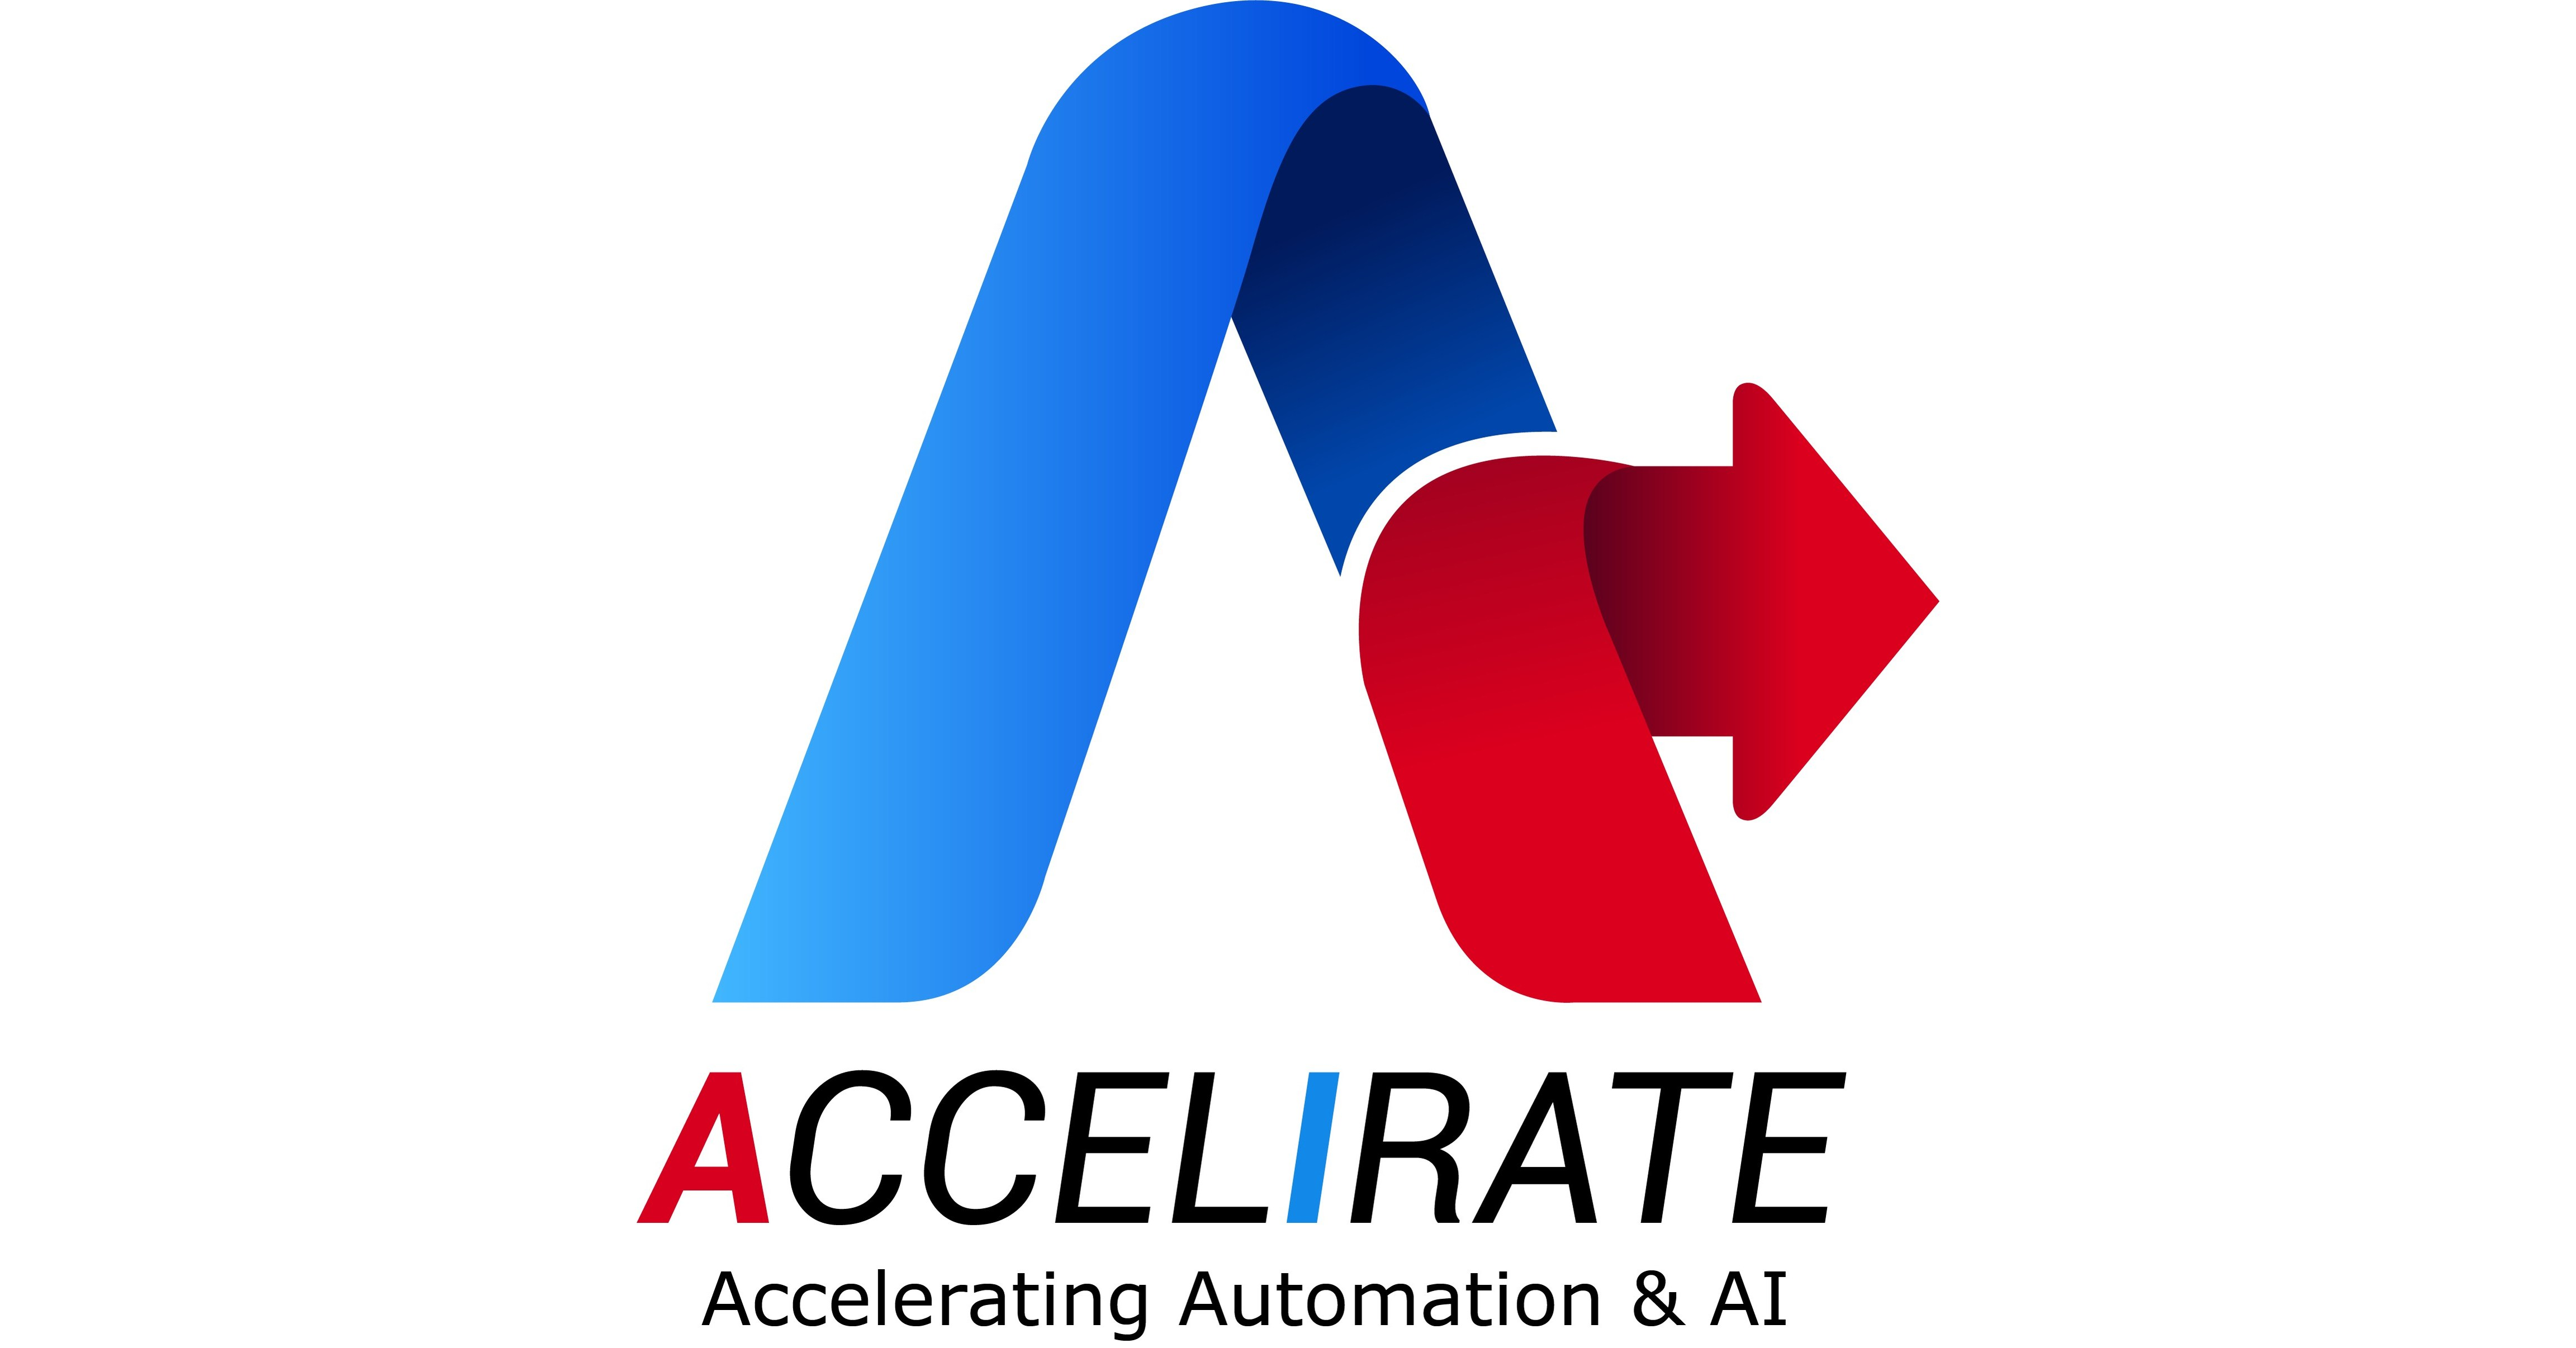 Accelirate Inc  Announced Four New Partnerships